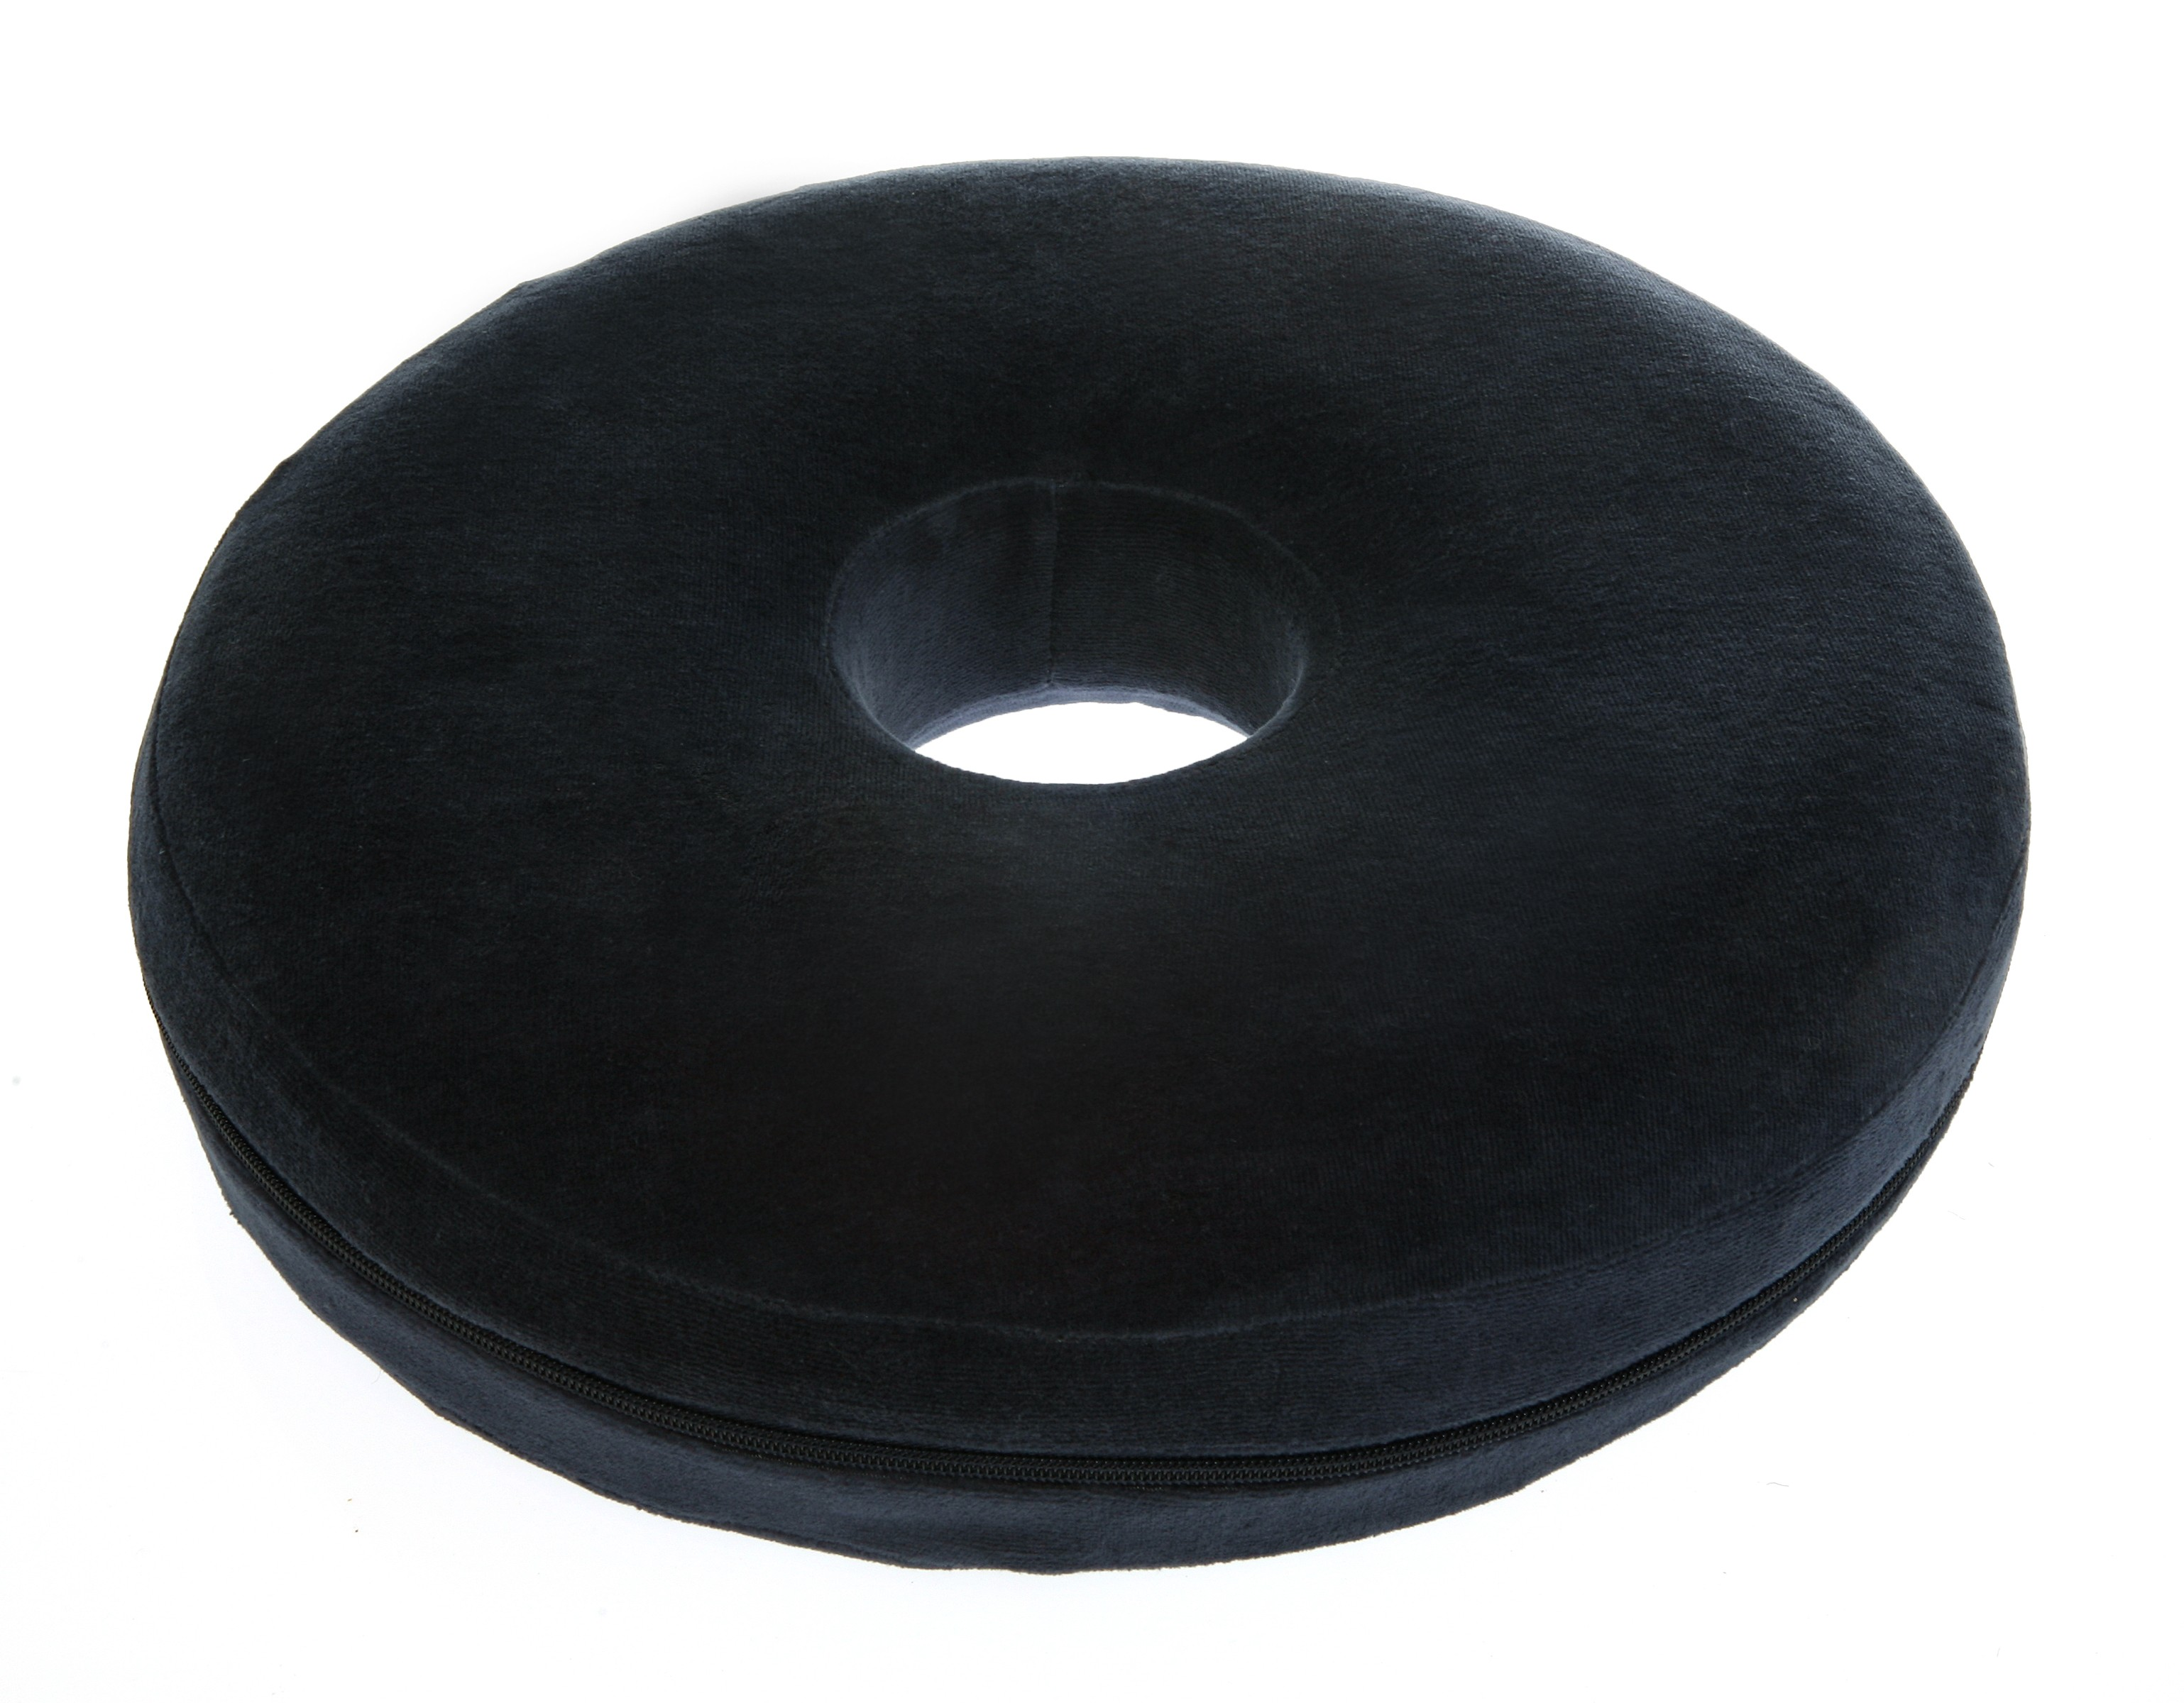 Donut Pillow Best Ring Shaped Supportive Foam Pillows